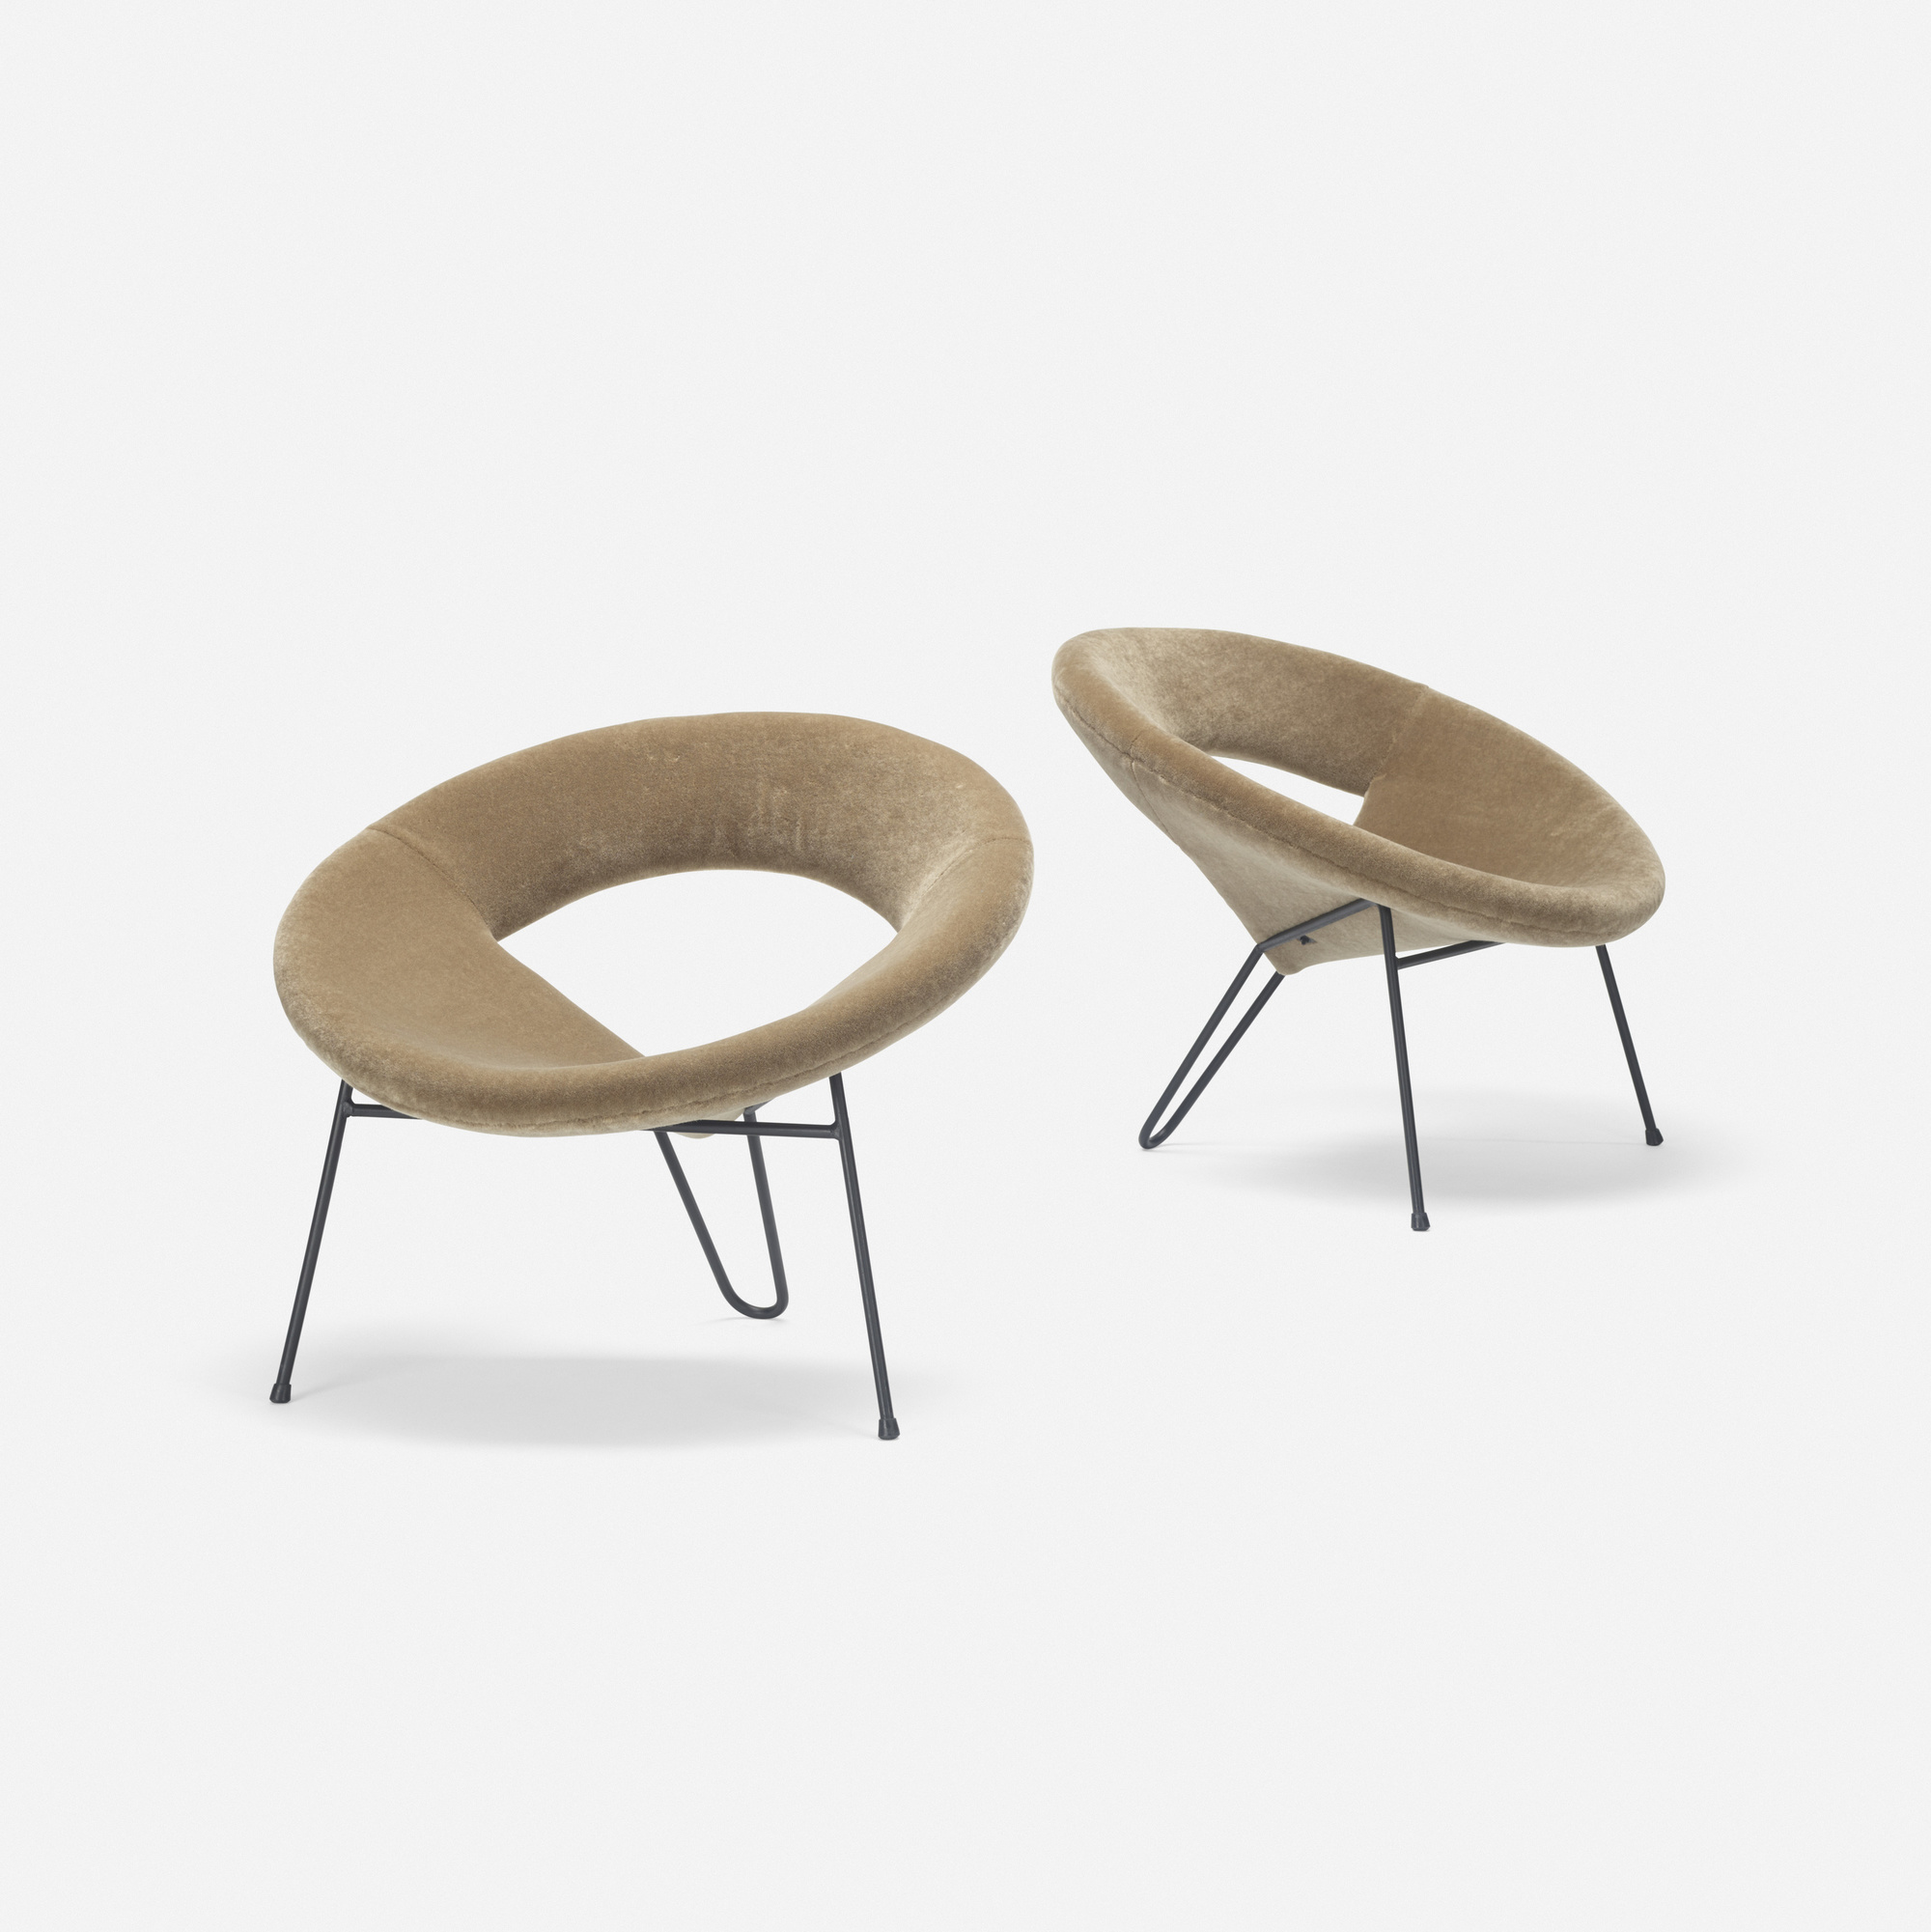 265: Henri Lancel / Satellite lounge chairs, pair (1 of 3)